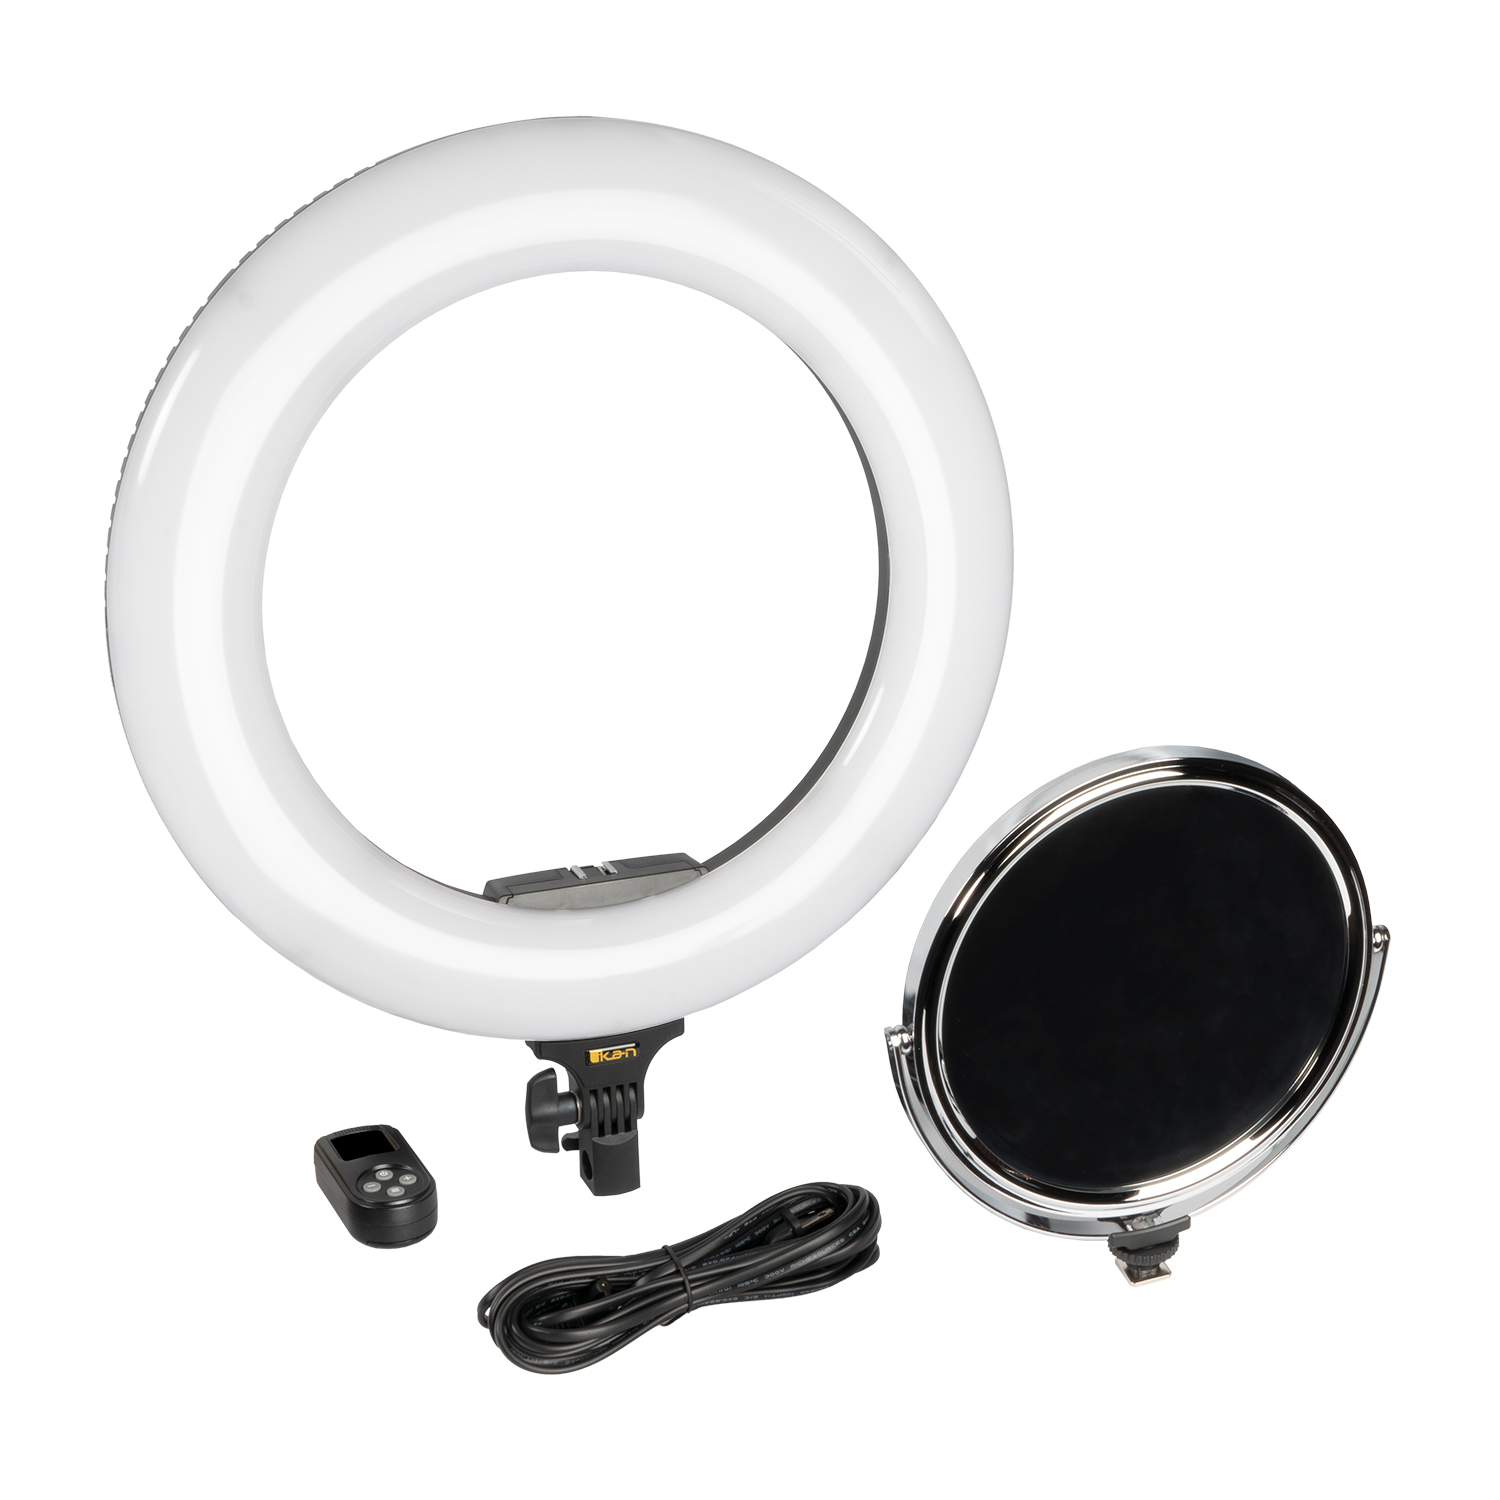 Oryon 18 Ring Light 2 image